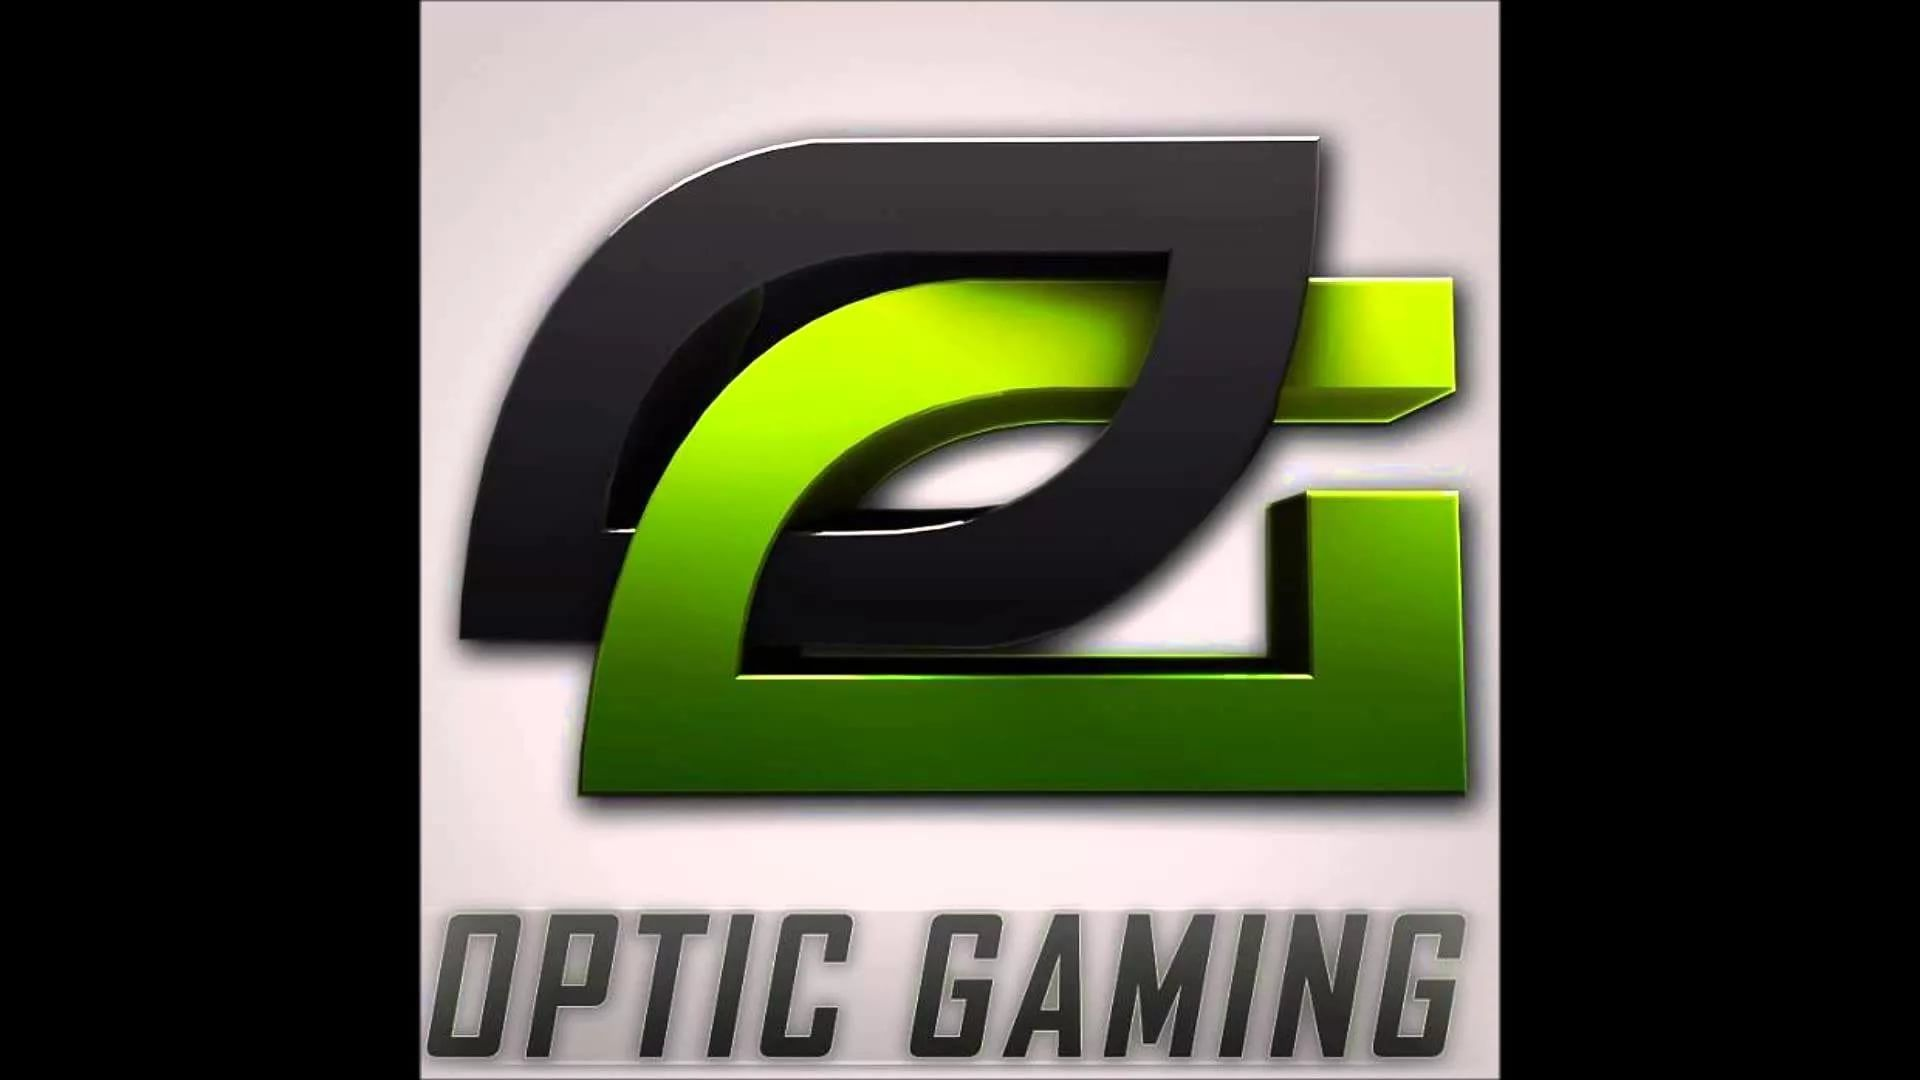 Optic Gaming wallpaper photo full hd